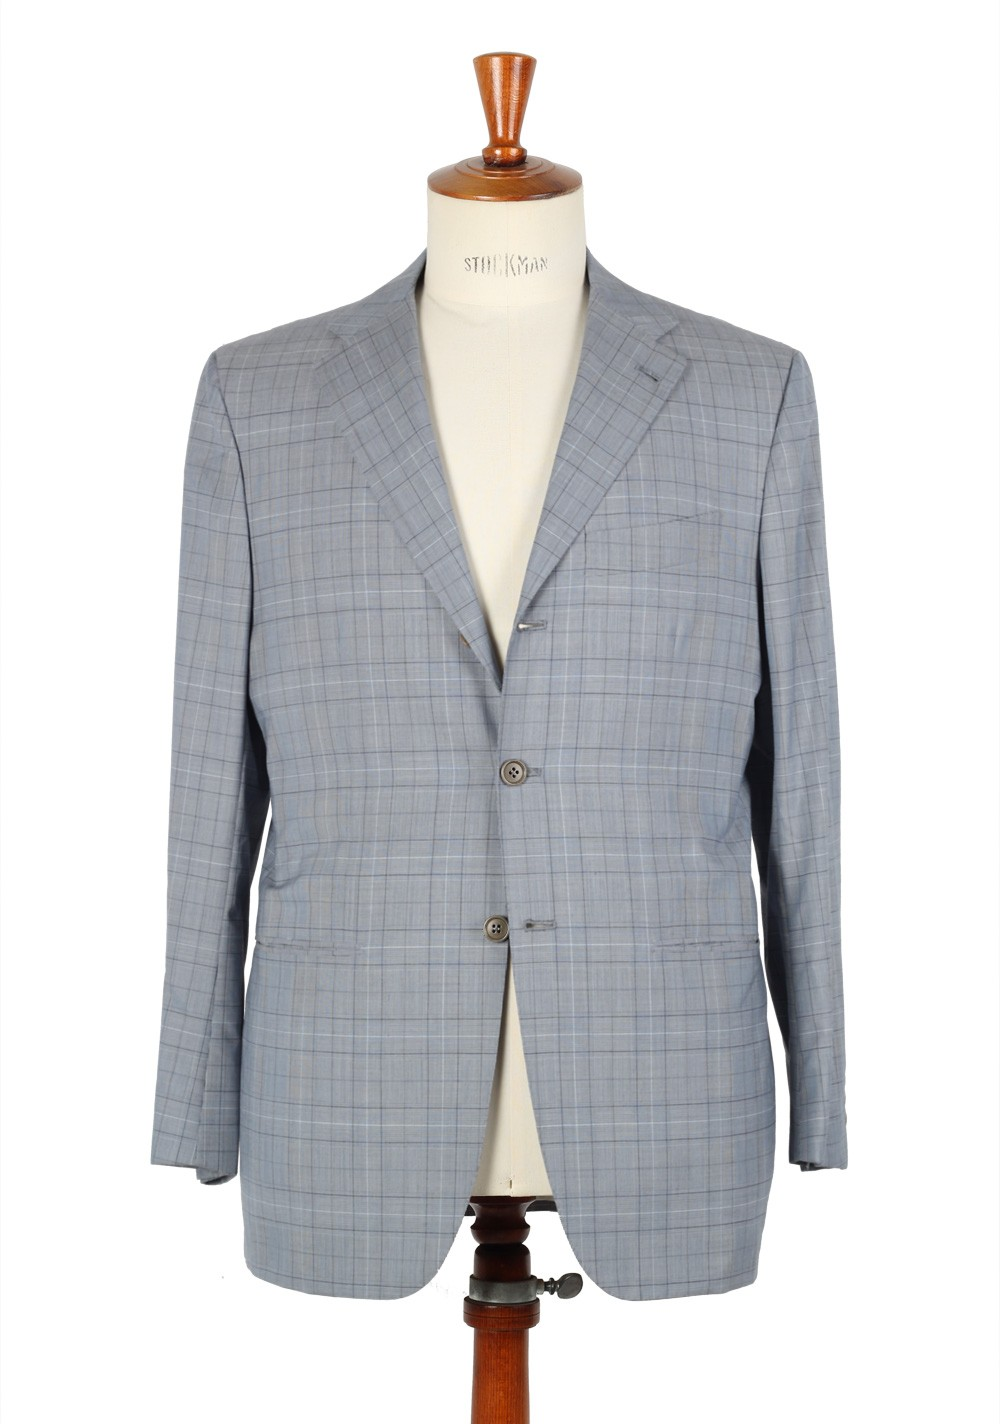 You searched for: size 48 suit! Etsy is the home to thousands of handmade, vintage, and one-of-a-kind products and gifts related to your search. No matter what you're looking for or where you are in the world, our global marketplace of sellers can help you find unique and affordable options.